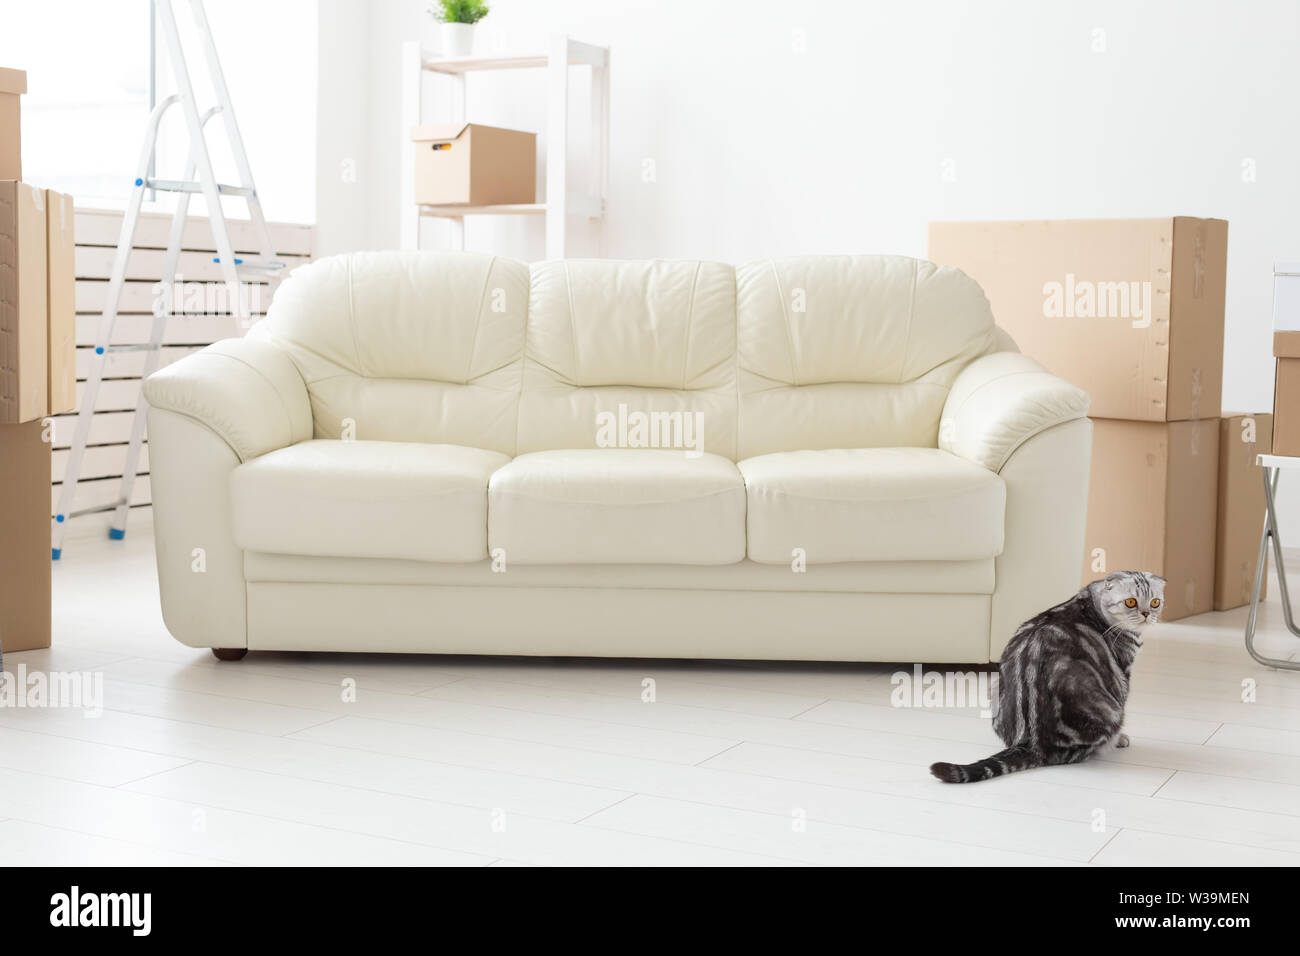 Beautiful gray scottish fold cat sits near a new empty sofa while moving to a new apartment. Concept of housewarming and good tradition with a cat. - Stock Image